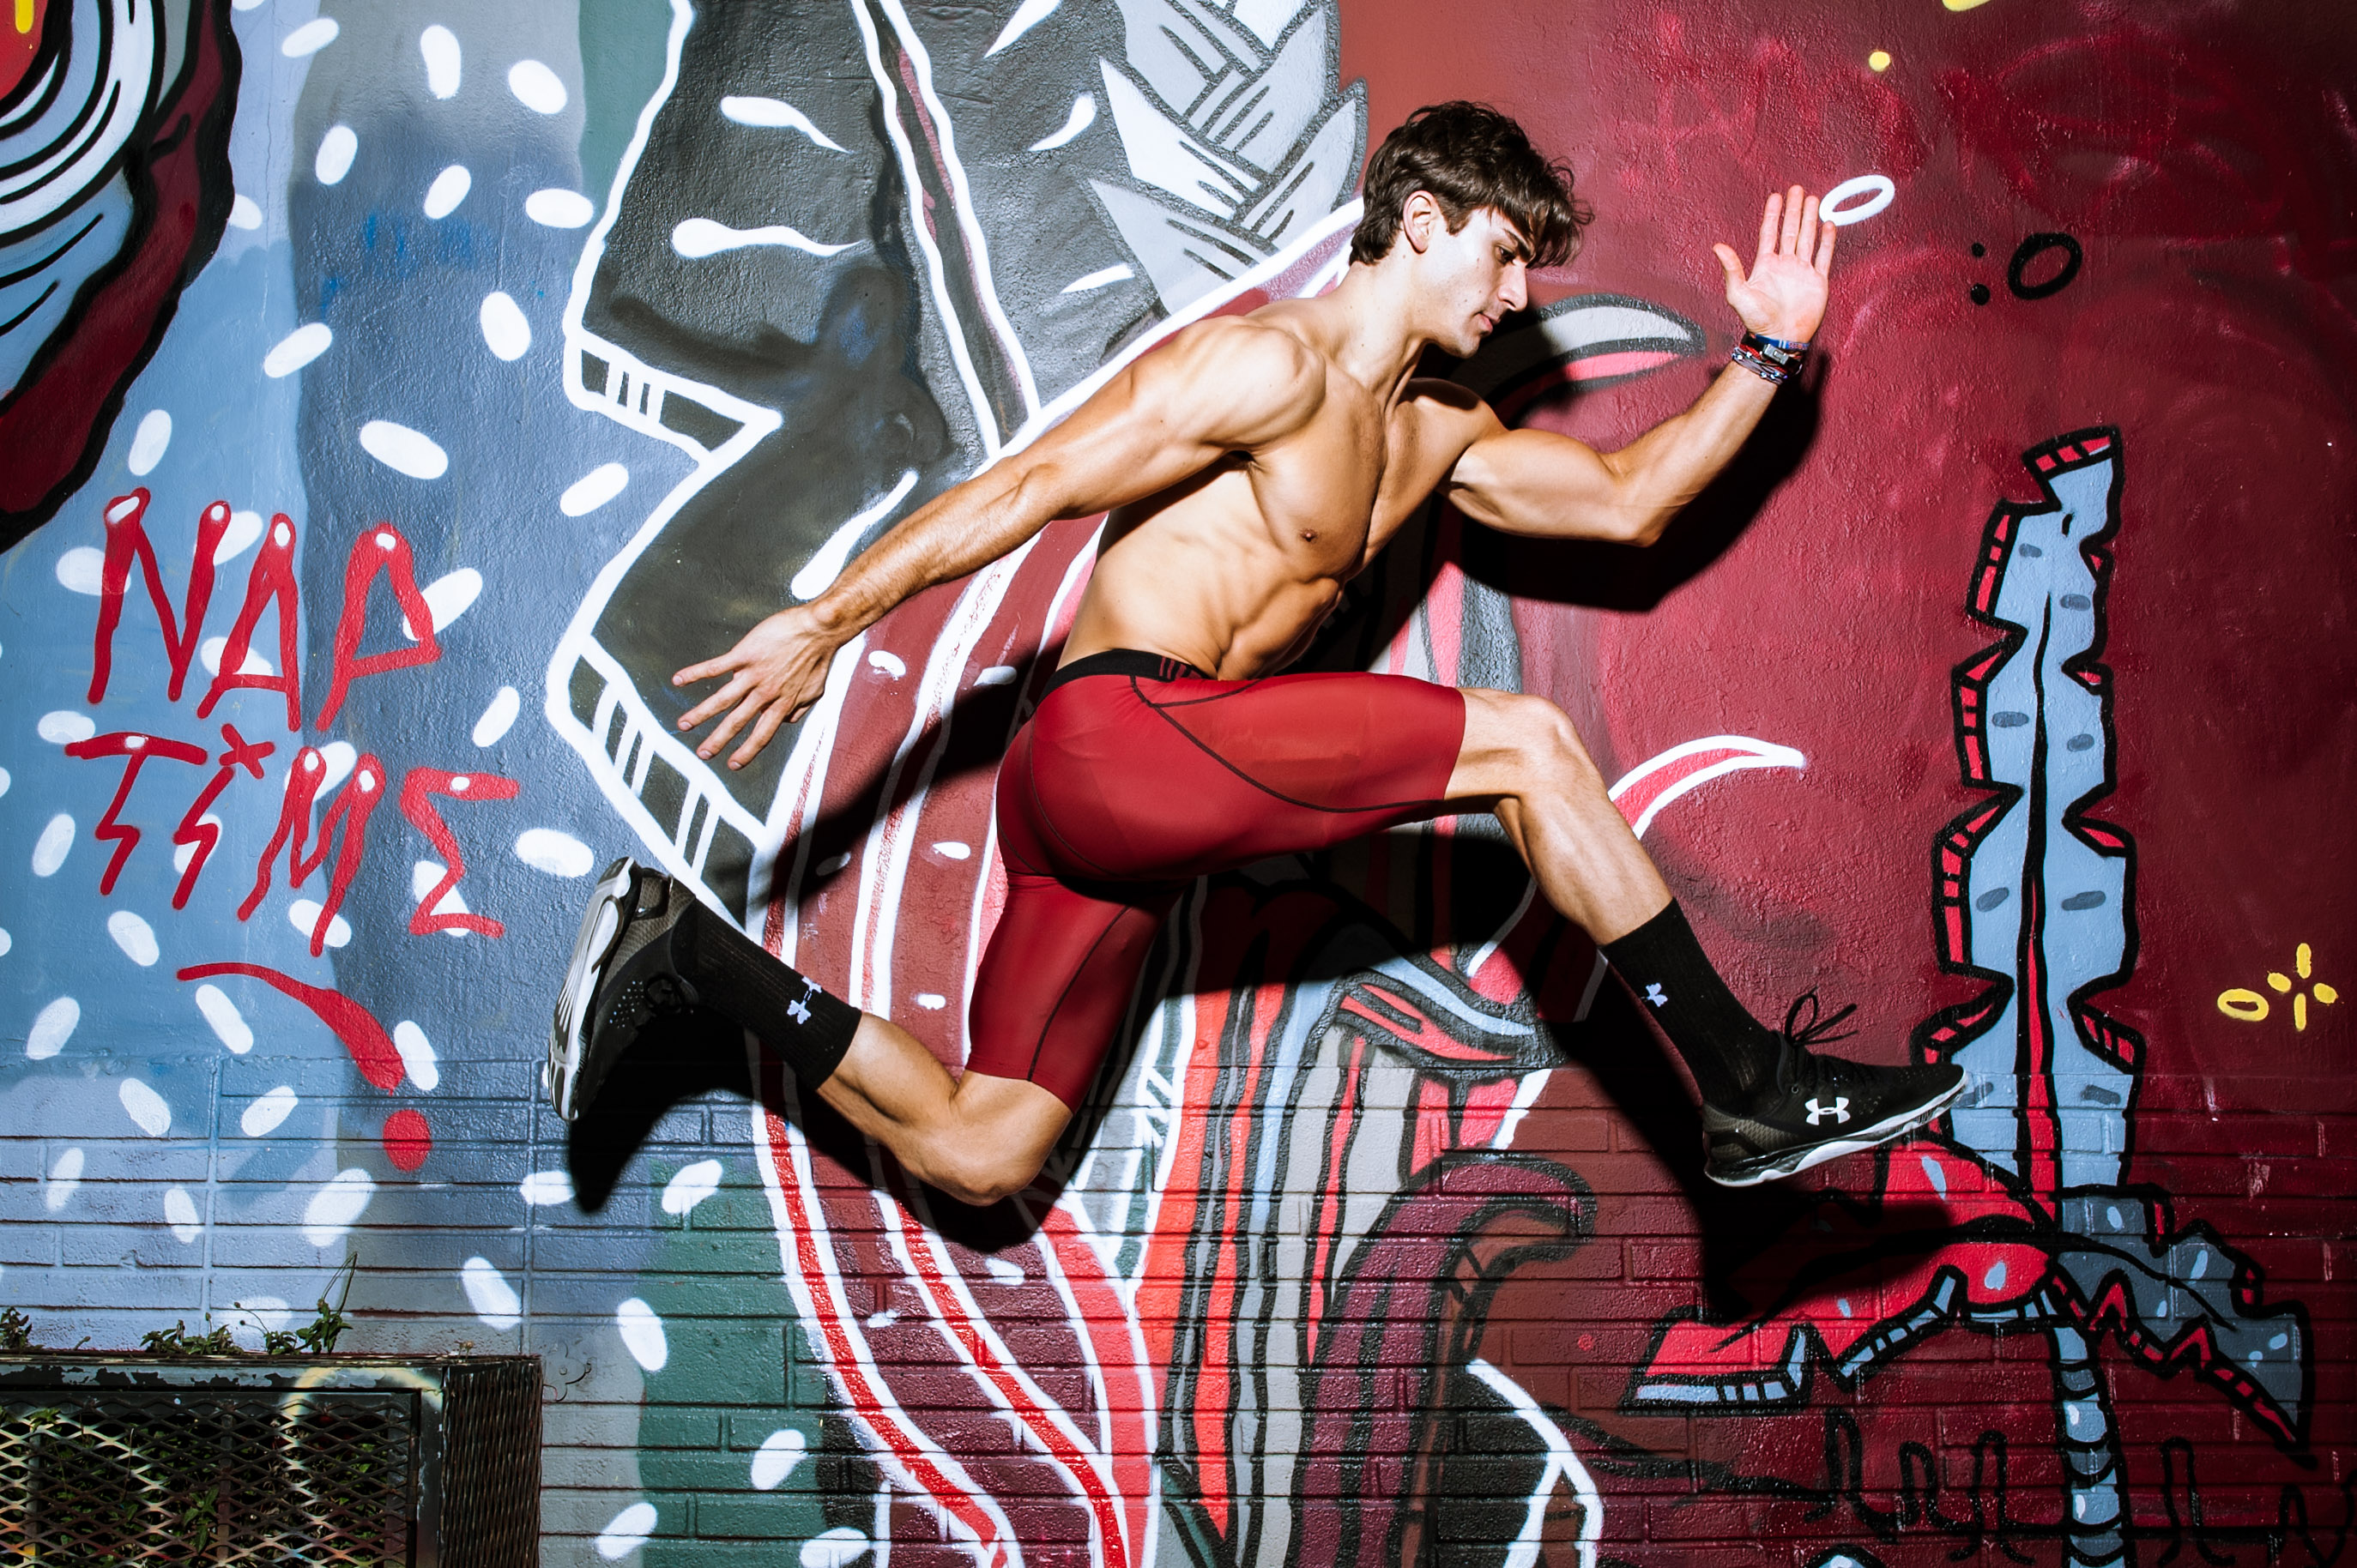 Niv Zinder - Athlete and fitness model at the Miami Wynwood Arts District Graffiti Walls